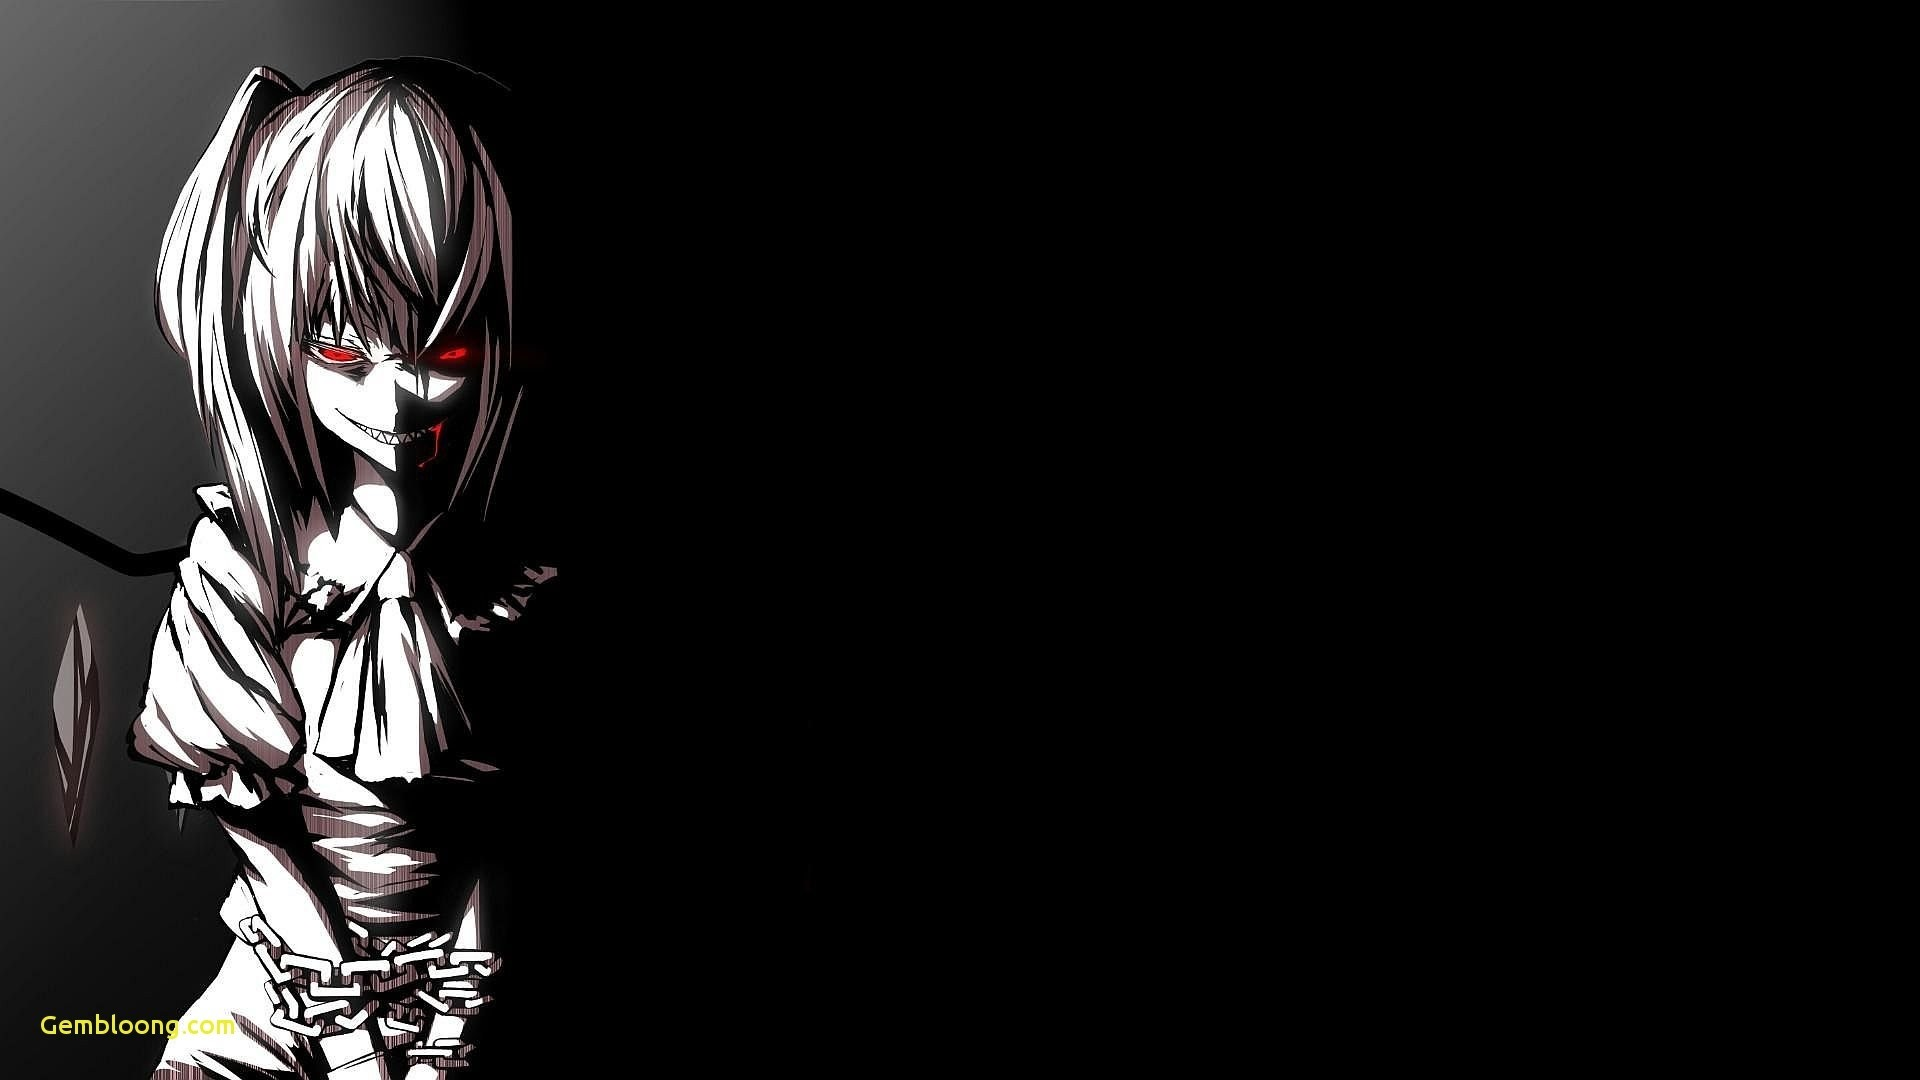 1920x1080 Black and White Anime Wallpaper Hd - Anime Wallpaper Hd Tumblr Fresh  Download Pure Black and